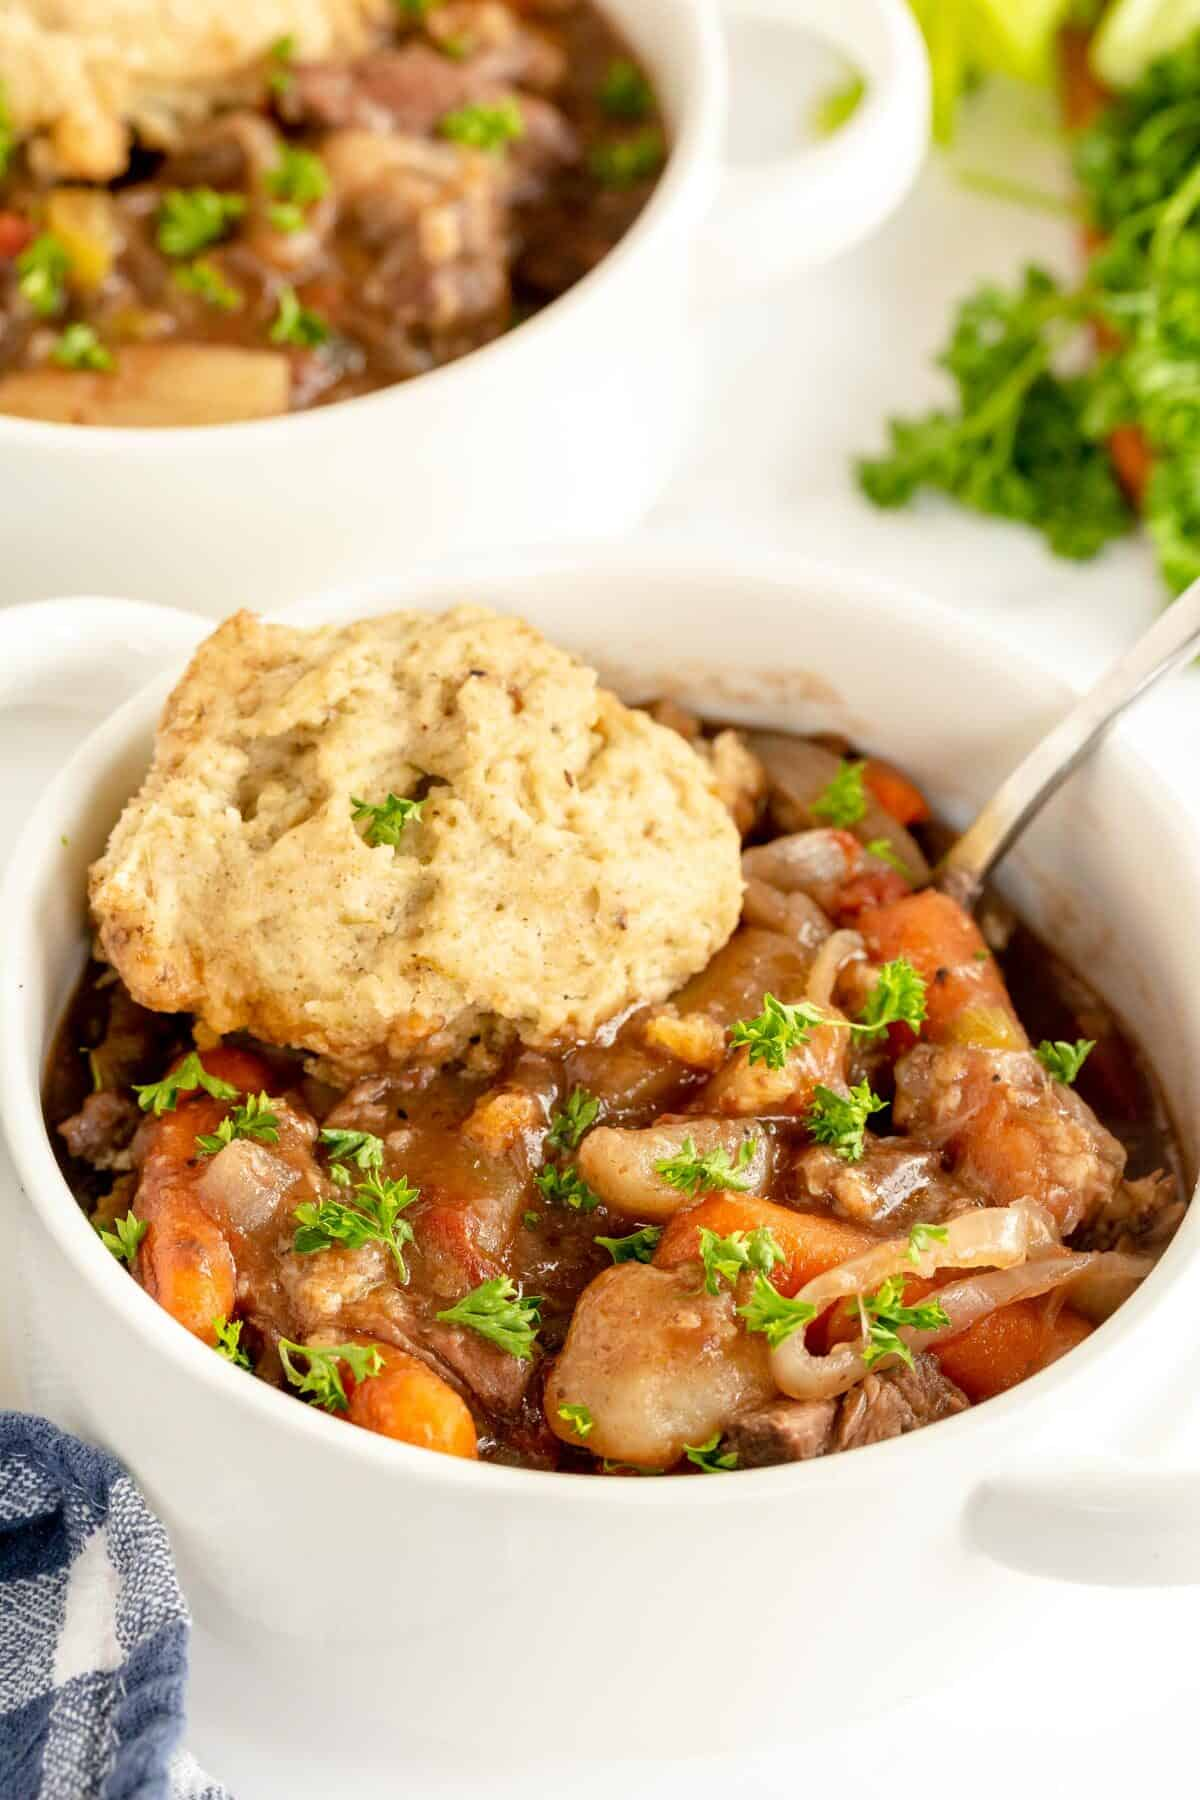 beef stew with dumplings in a white bowl